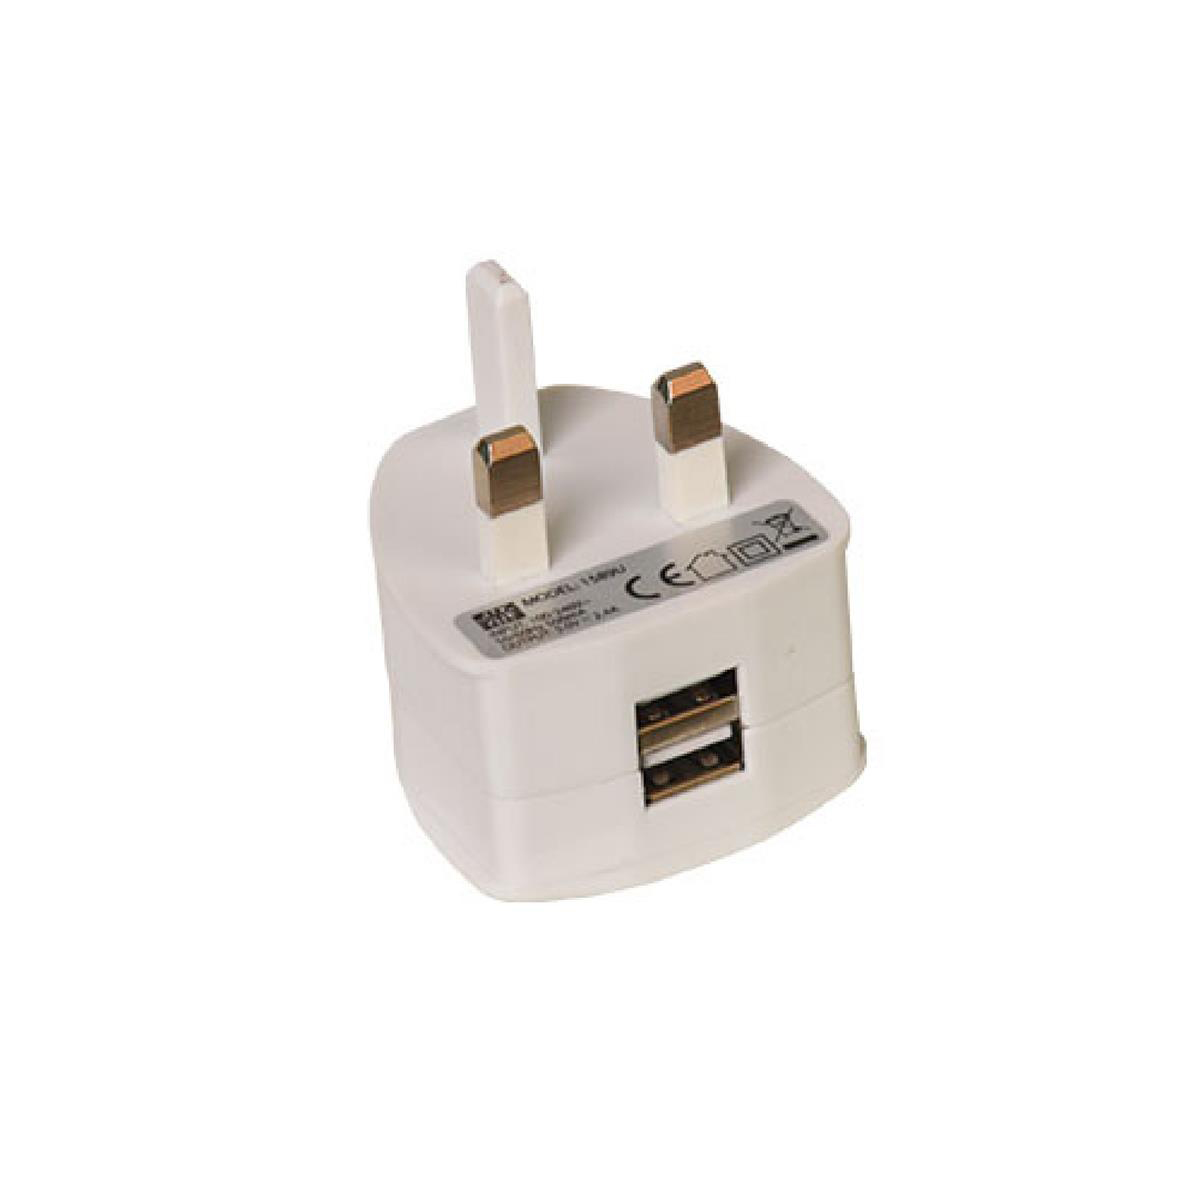 Cables & Adaptors Two Port USB Power Plug Ref USBDBL